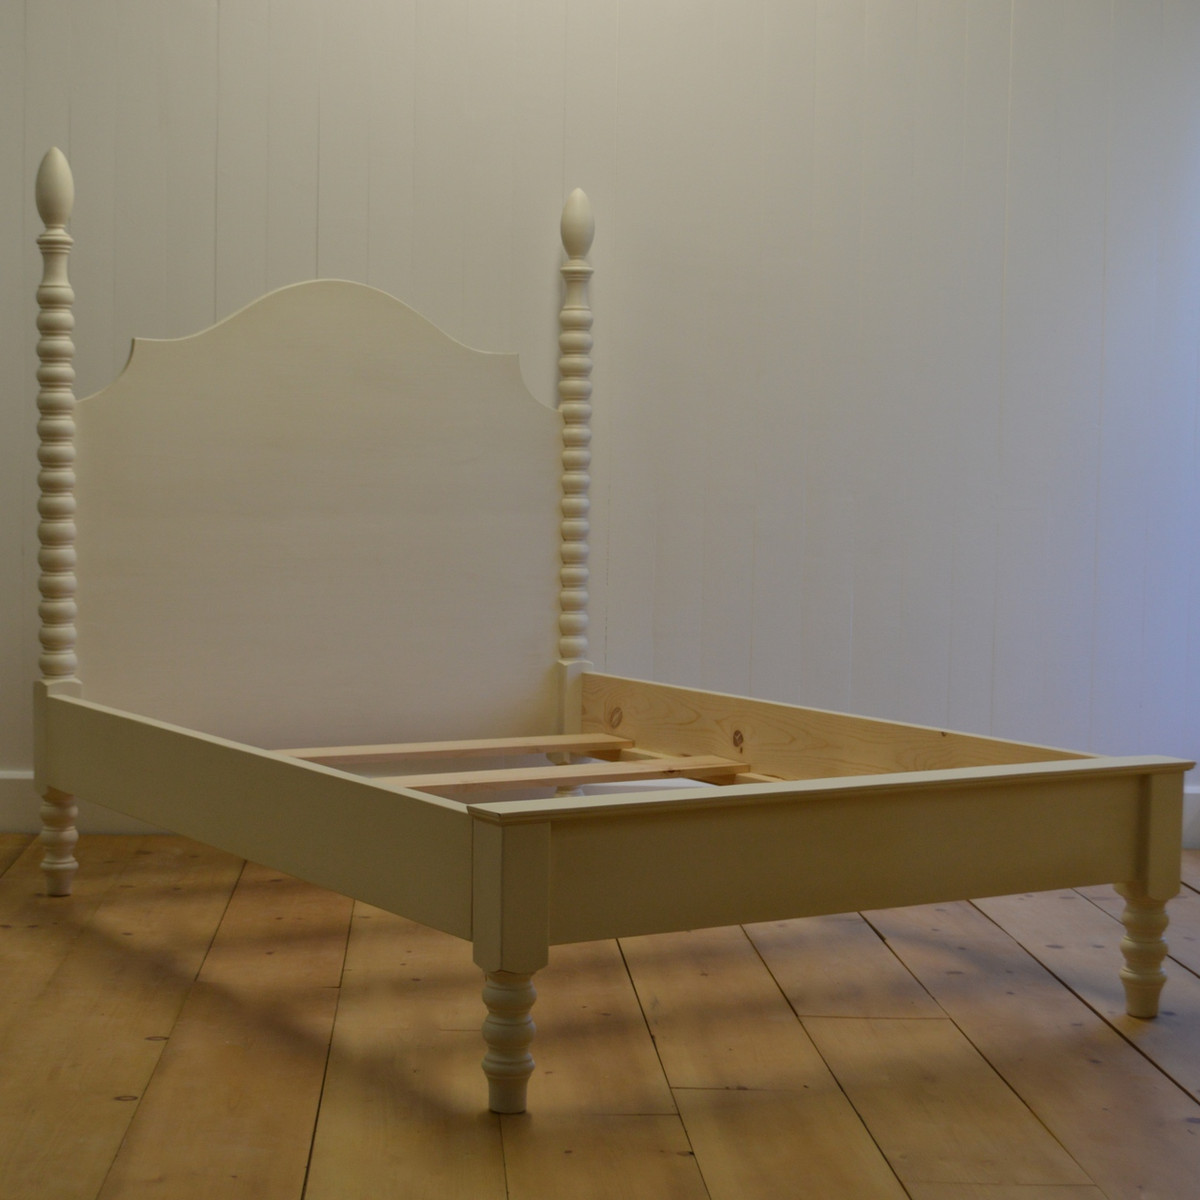 French Farm Spindle Bed with Petite Footboard